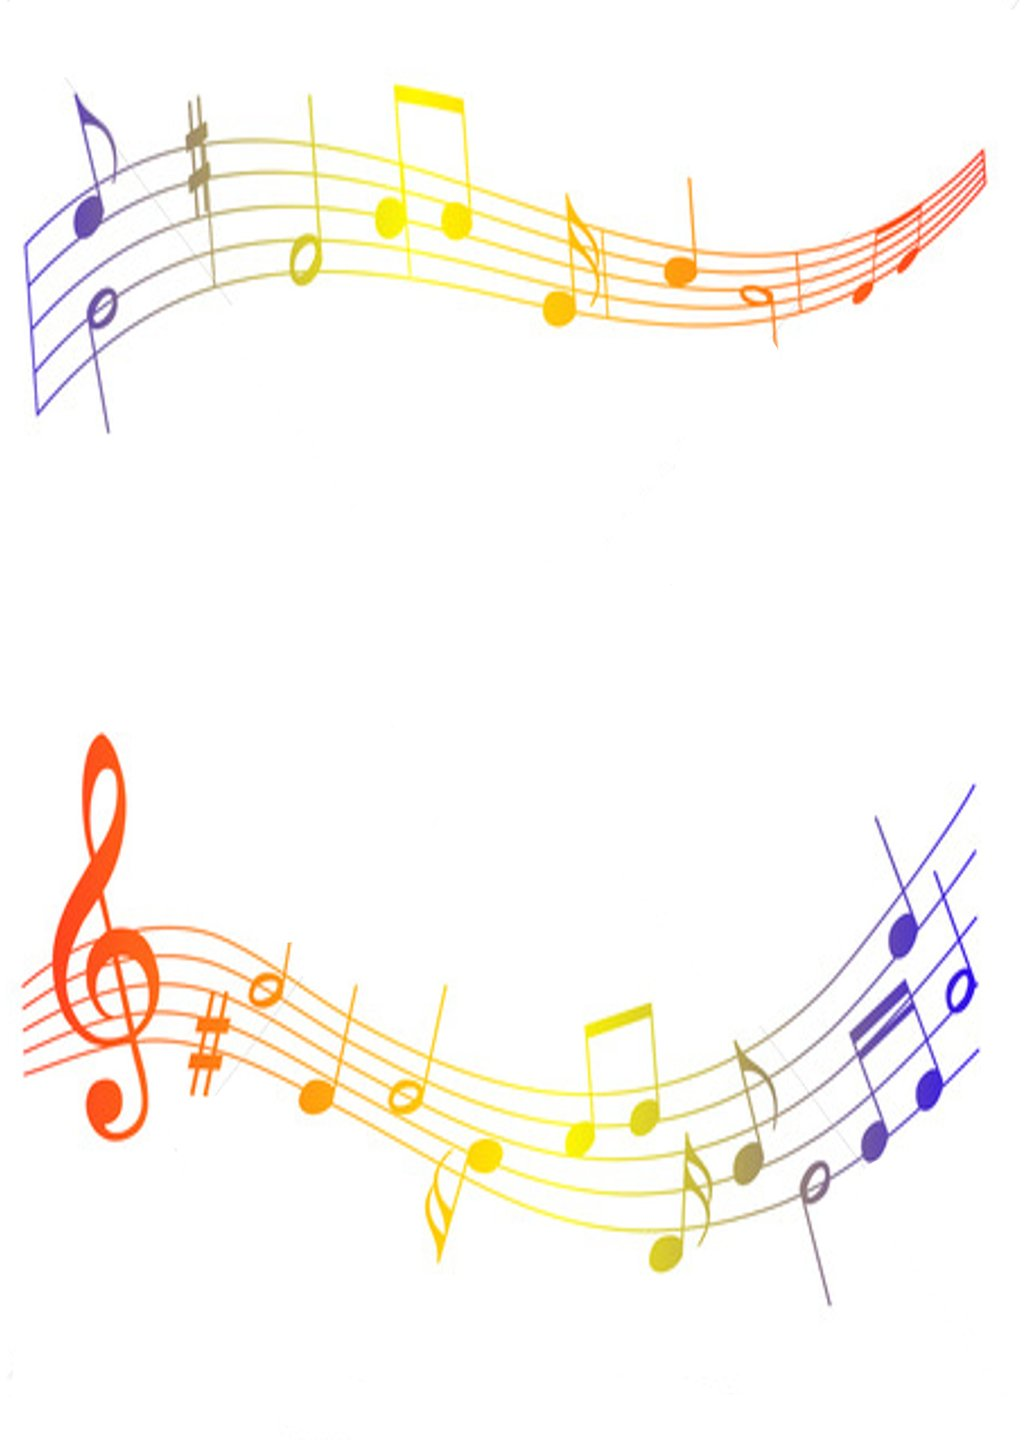 graphic regarding Free Printable Borders and Frames Clip Art titled Totally free New music Clipart Borders And Frames